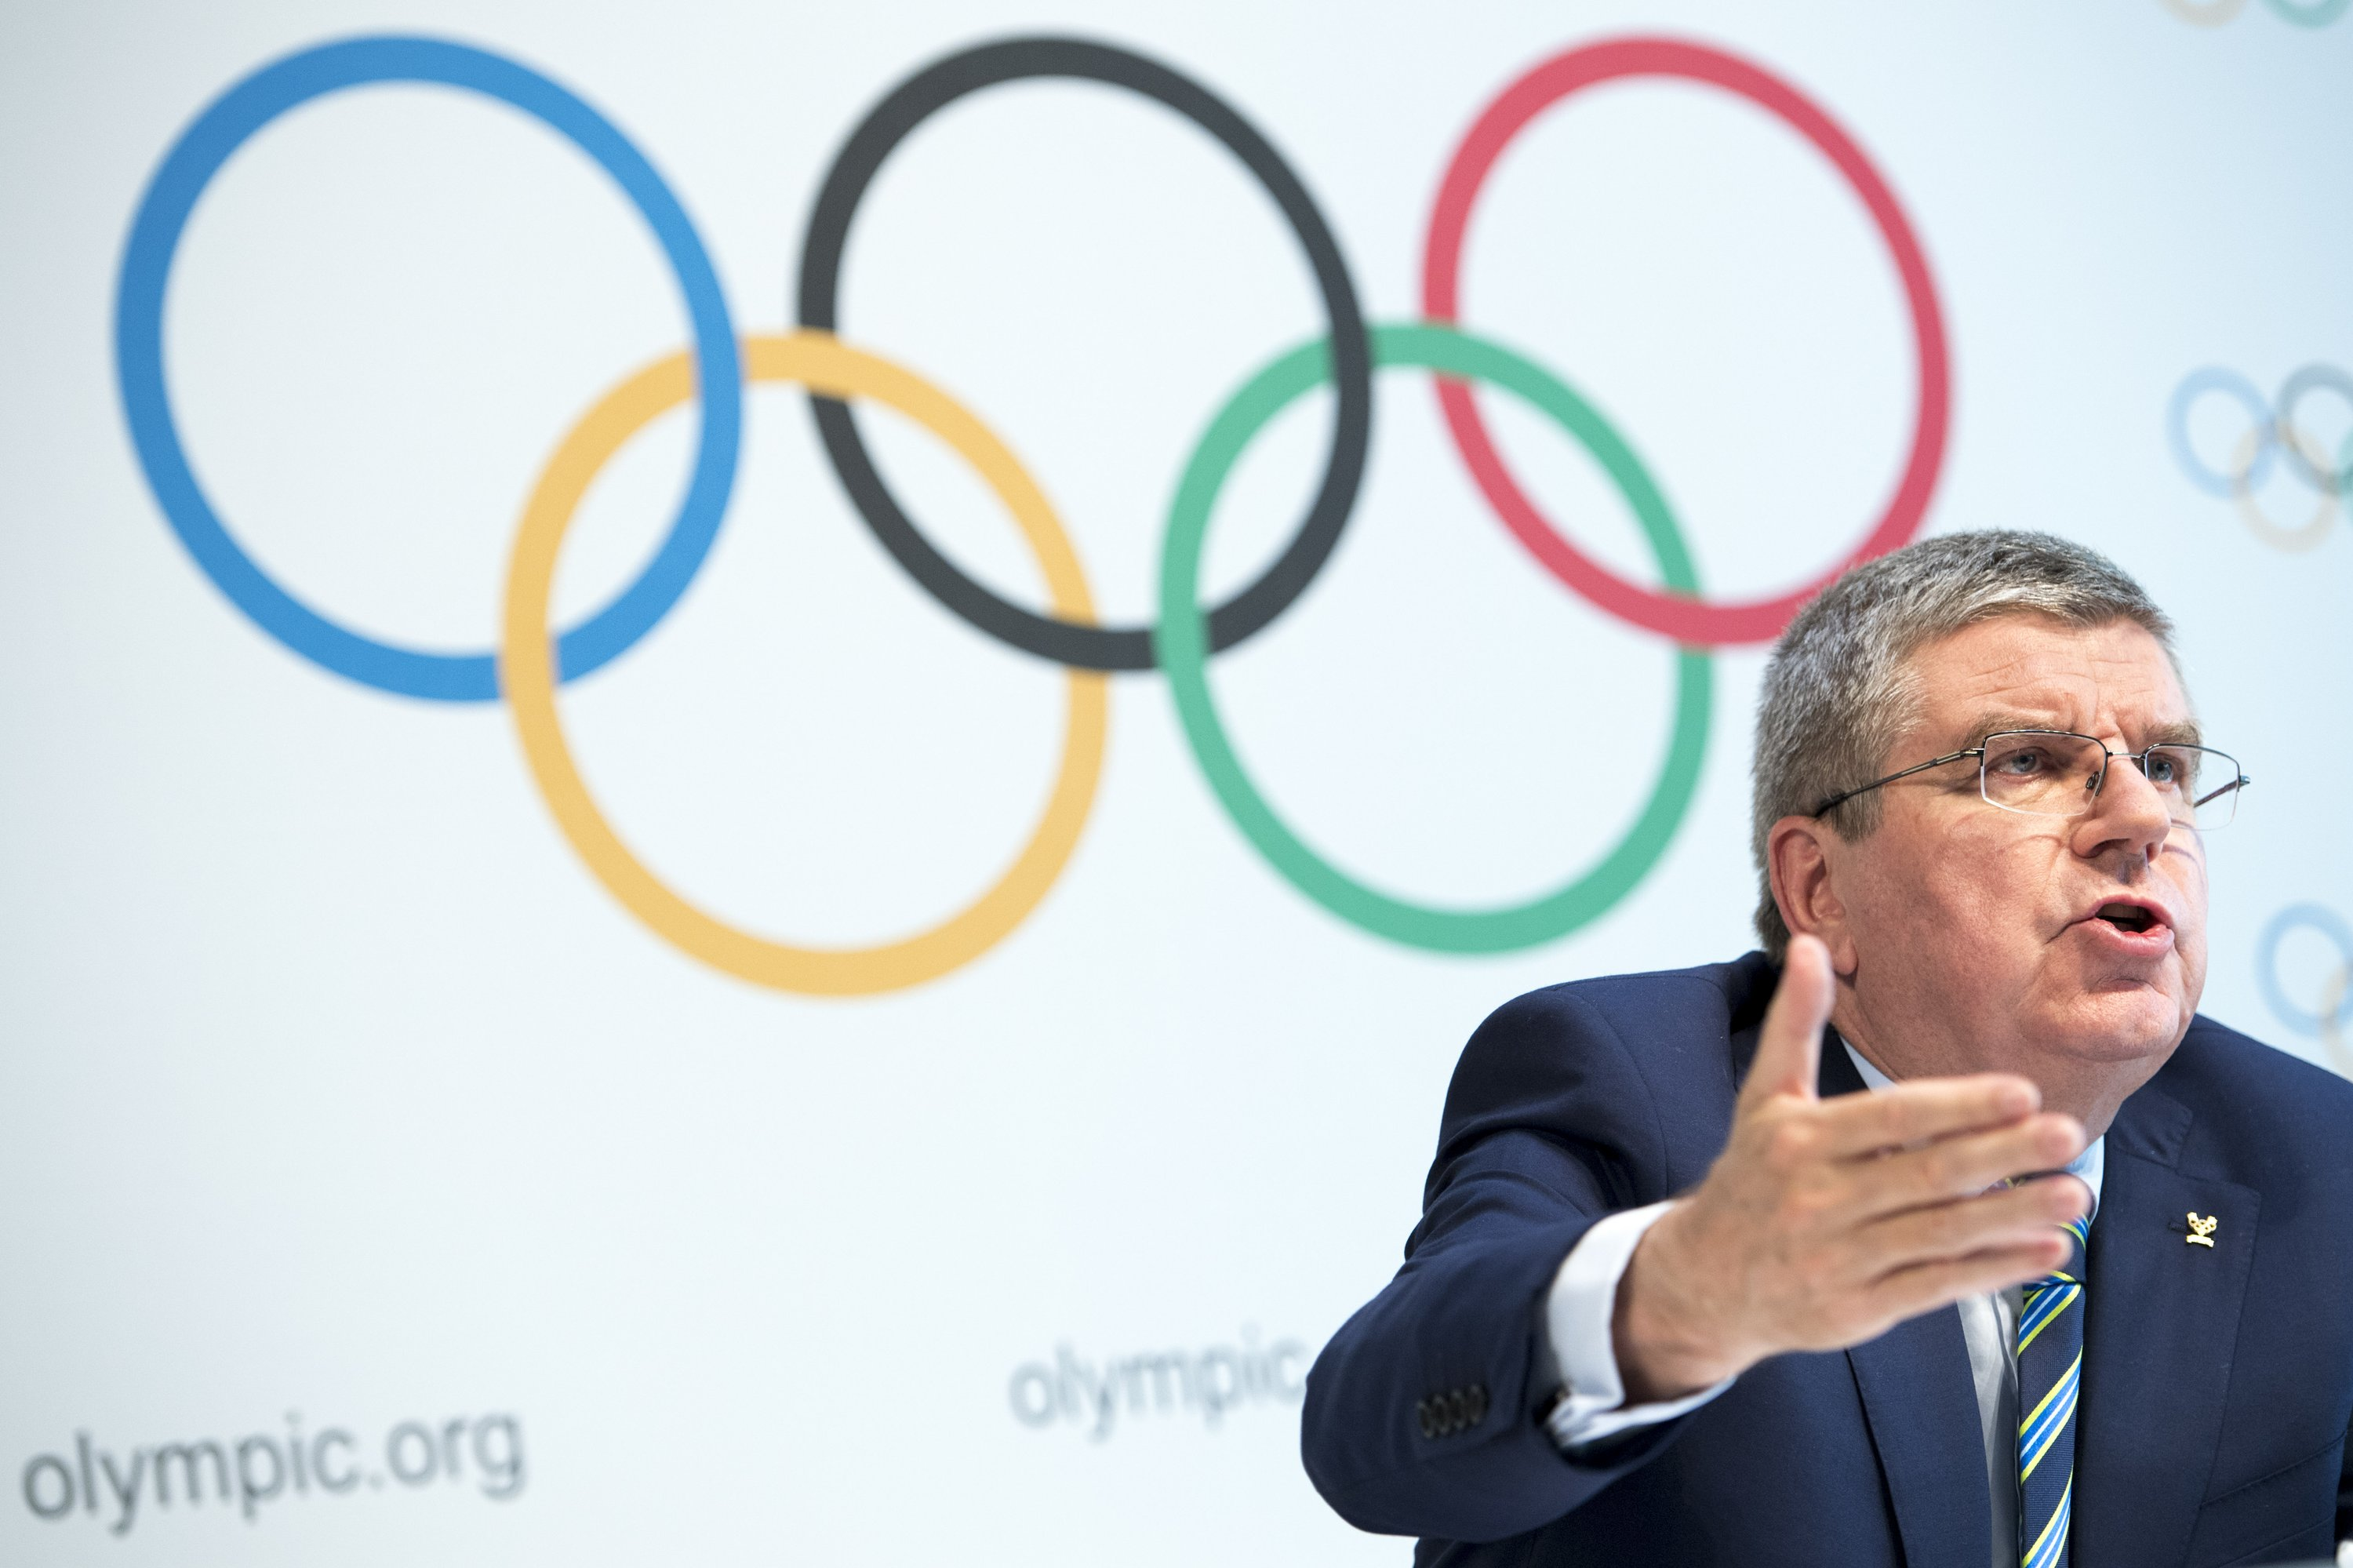 The Latest: Kenyans ask IOC for clarification on doping